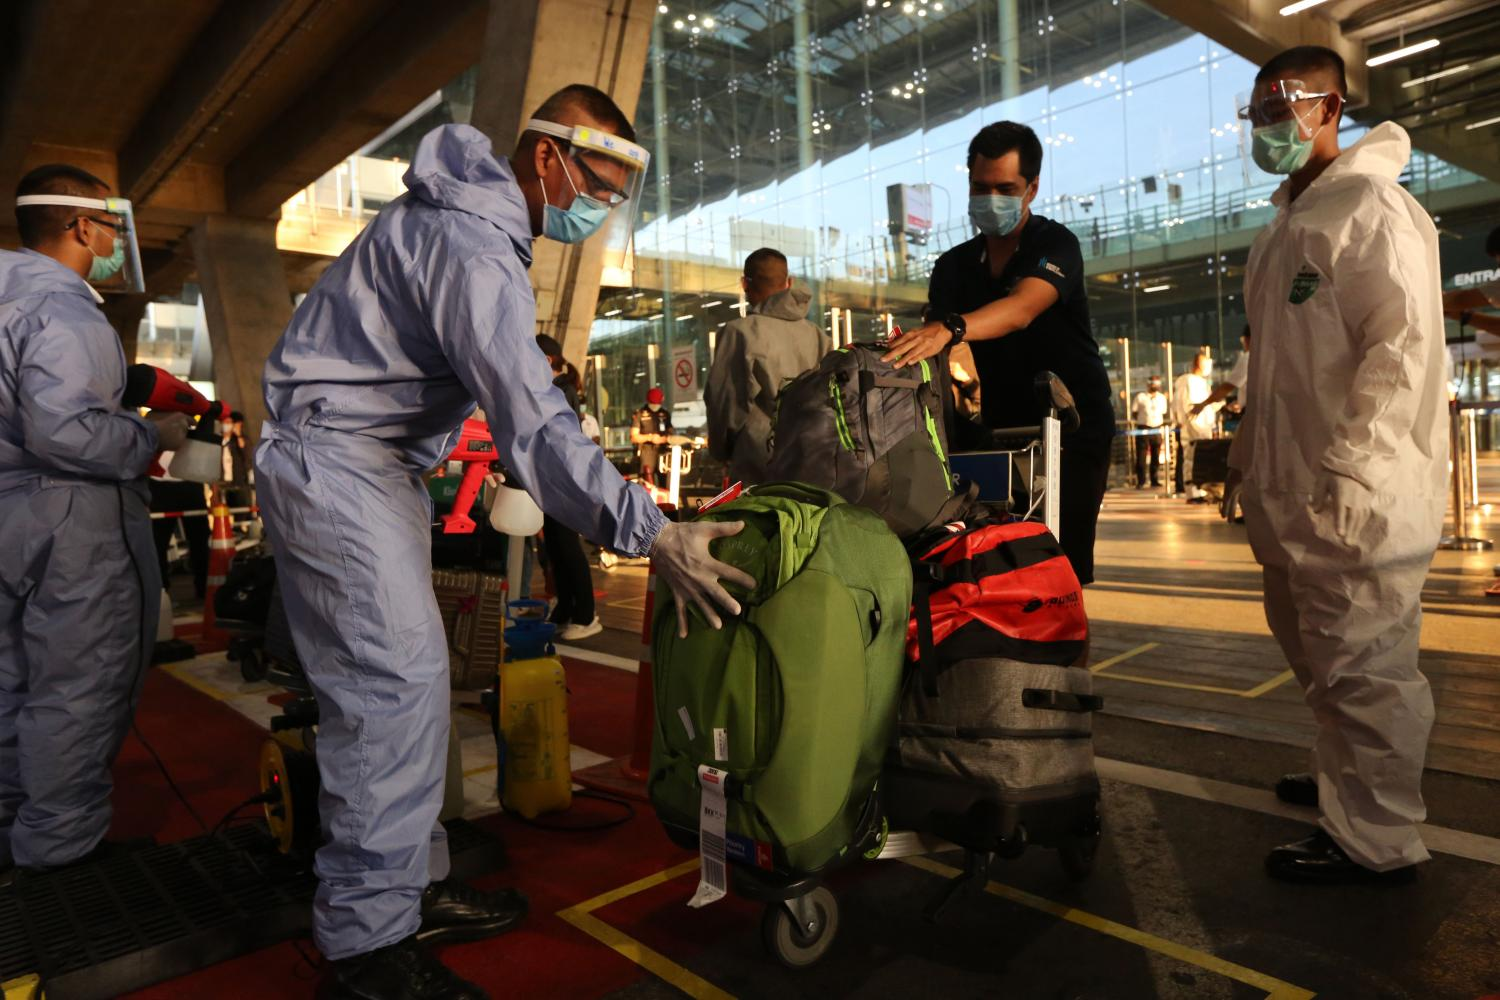 Staff disinfect the luggage of Thai returnees from the UAE who arrived on Saturday at Suvarnabhumi Airport.